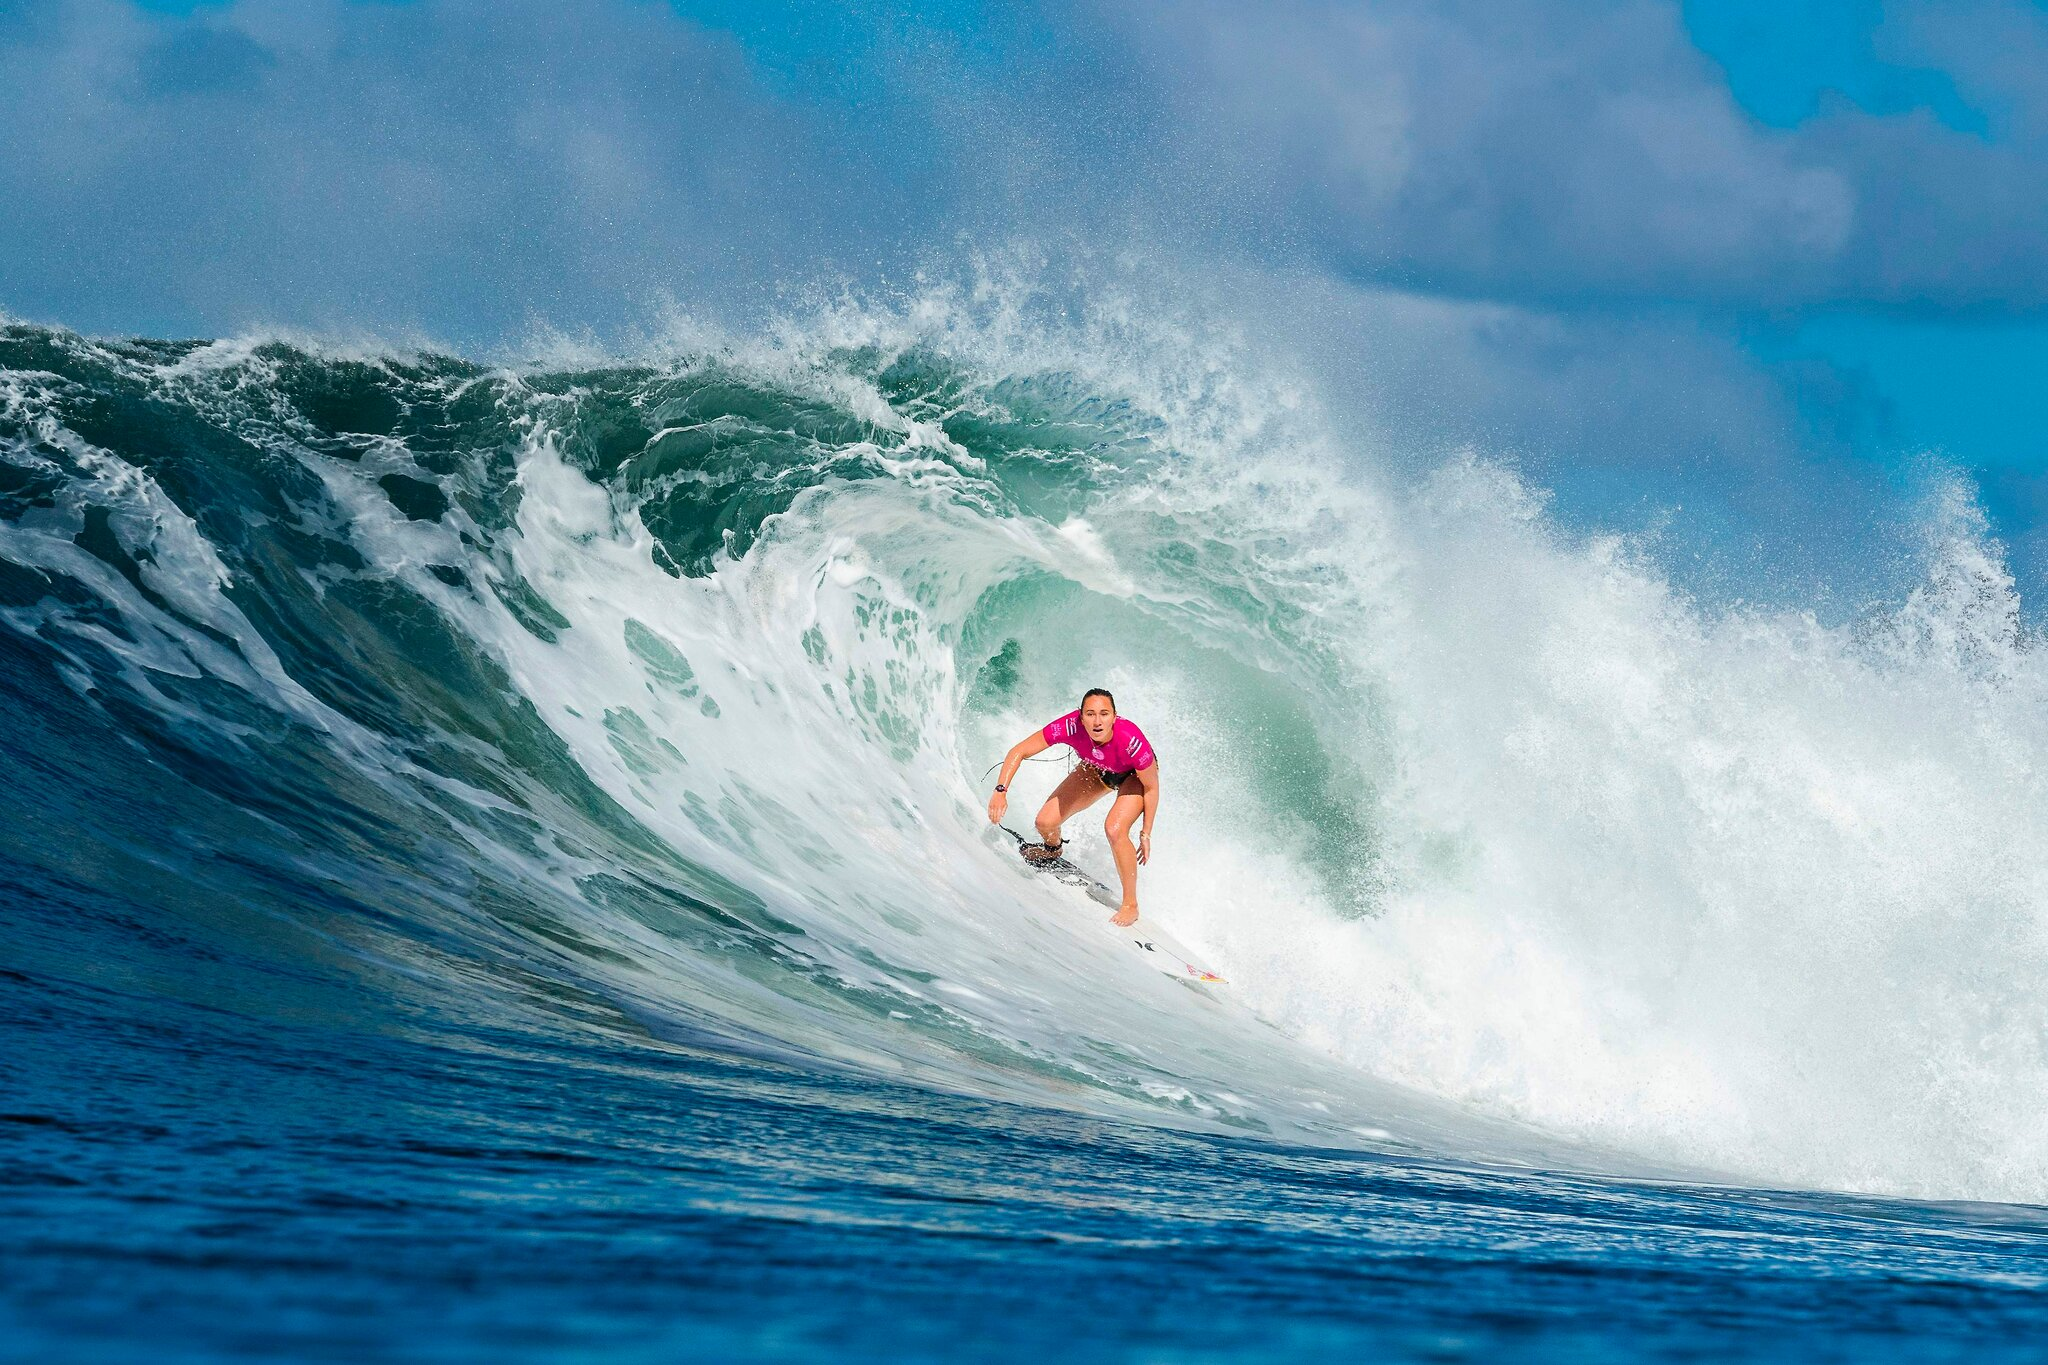 image of female surfer Carissa Moore catching a wave from her professional website